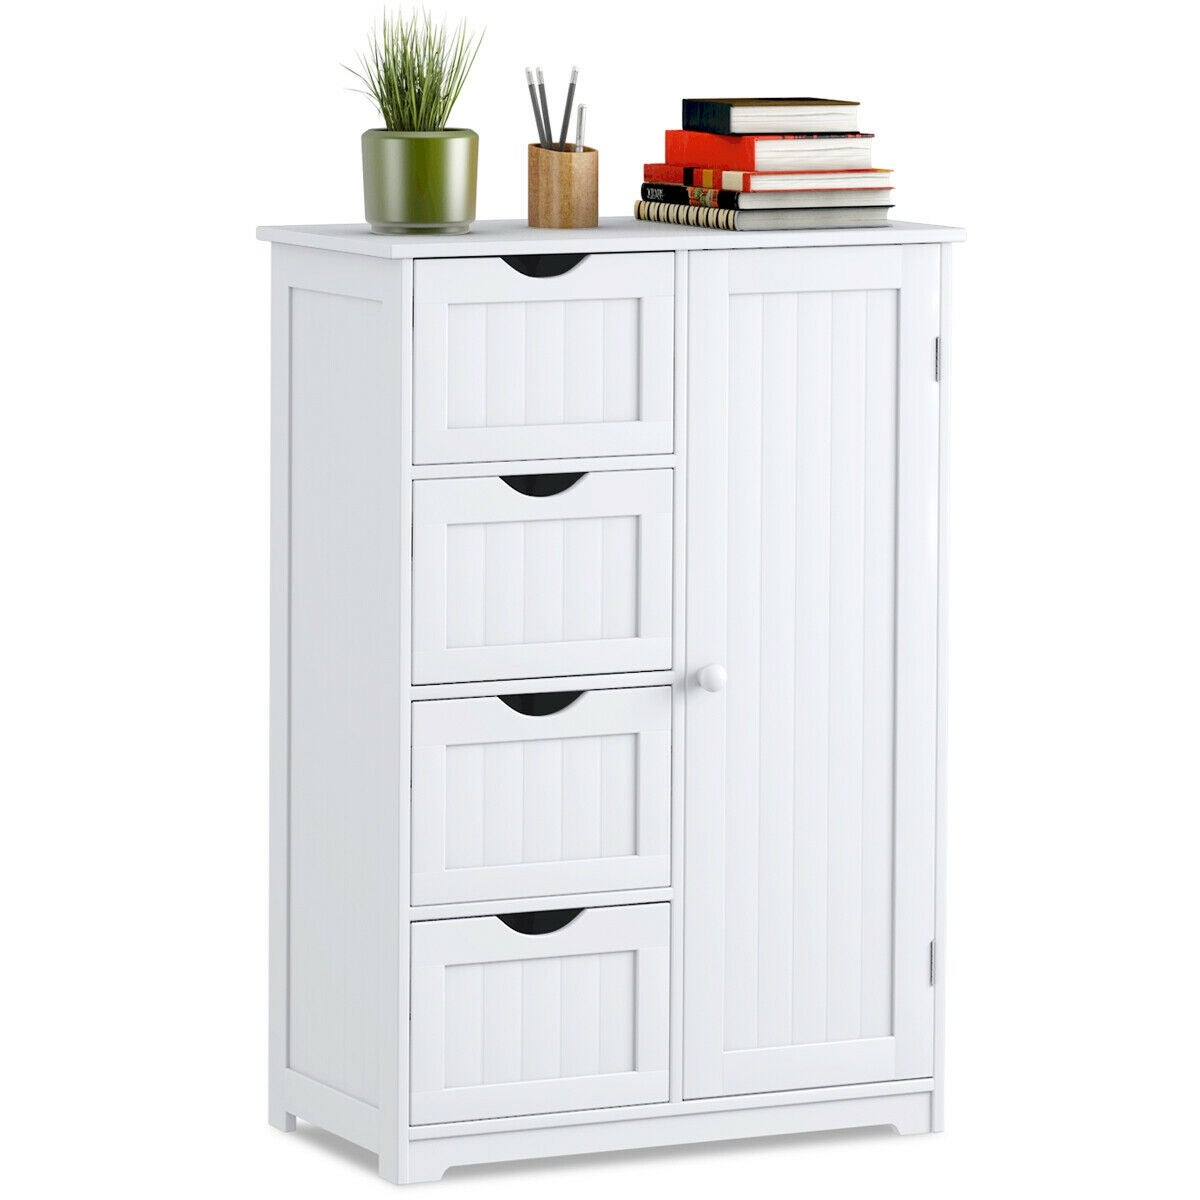 Costway Wooden 4 Drawer Bathroom Cabinet Storage Cupboard 2 Shelves Free Standing White with regard to sizing 1200 X 1200